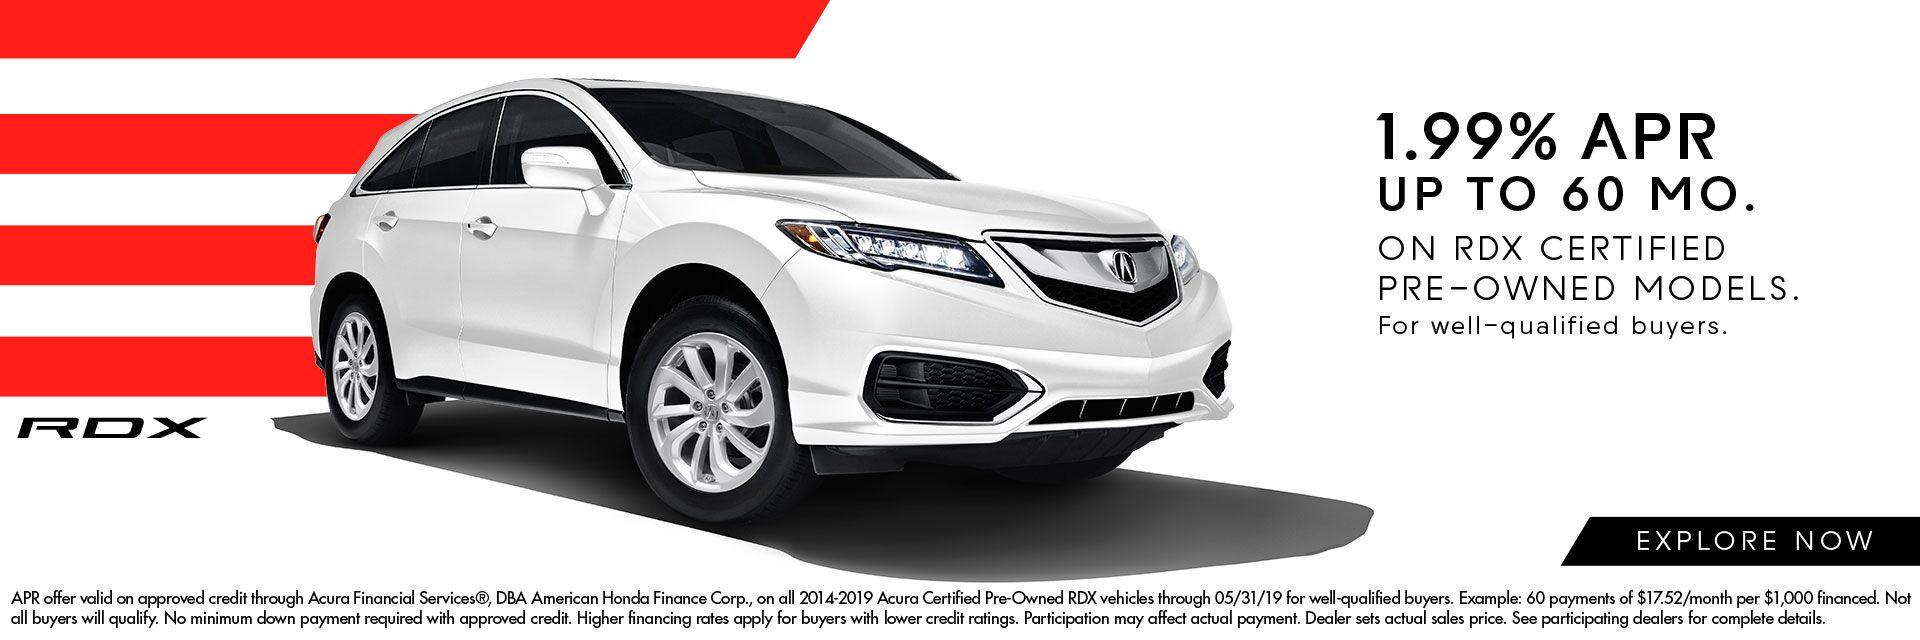 1.99% APR Certified Incentives at Acura Of Salem